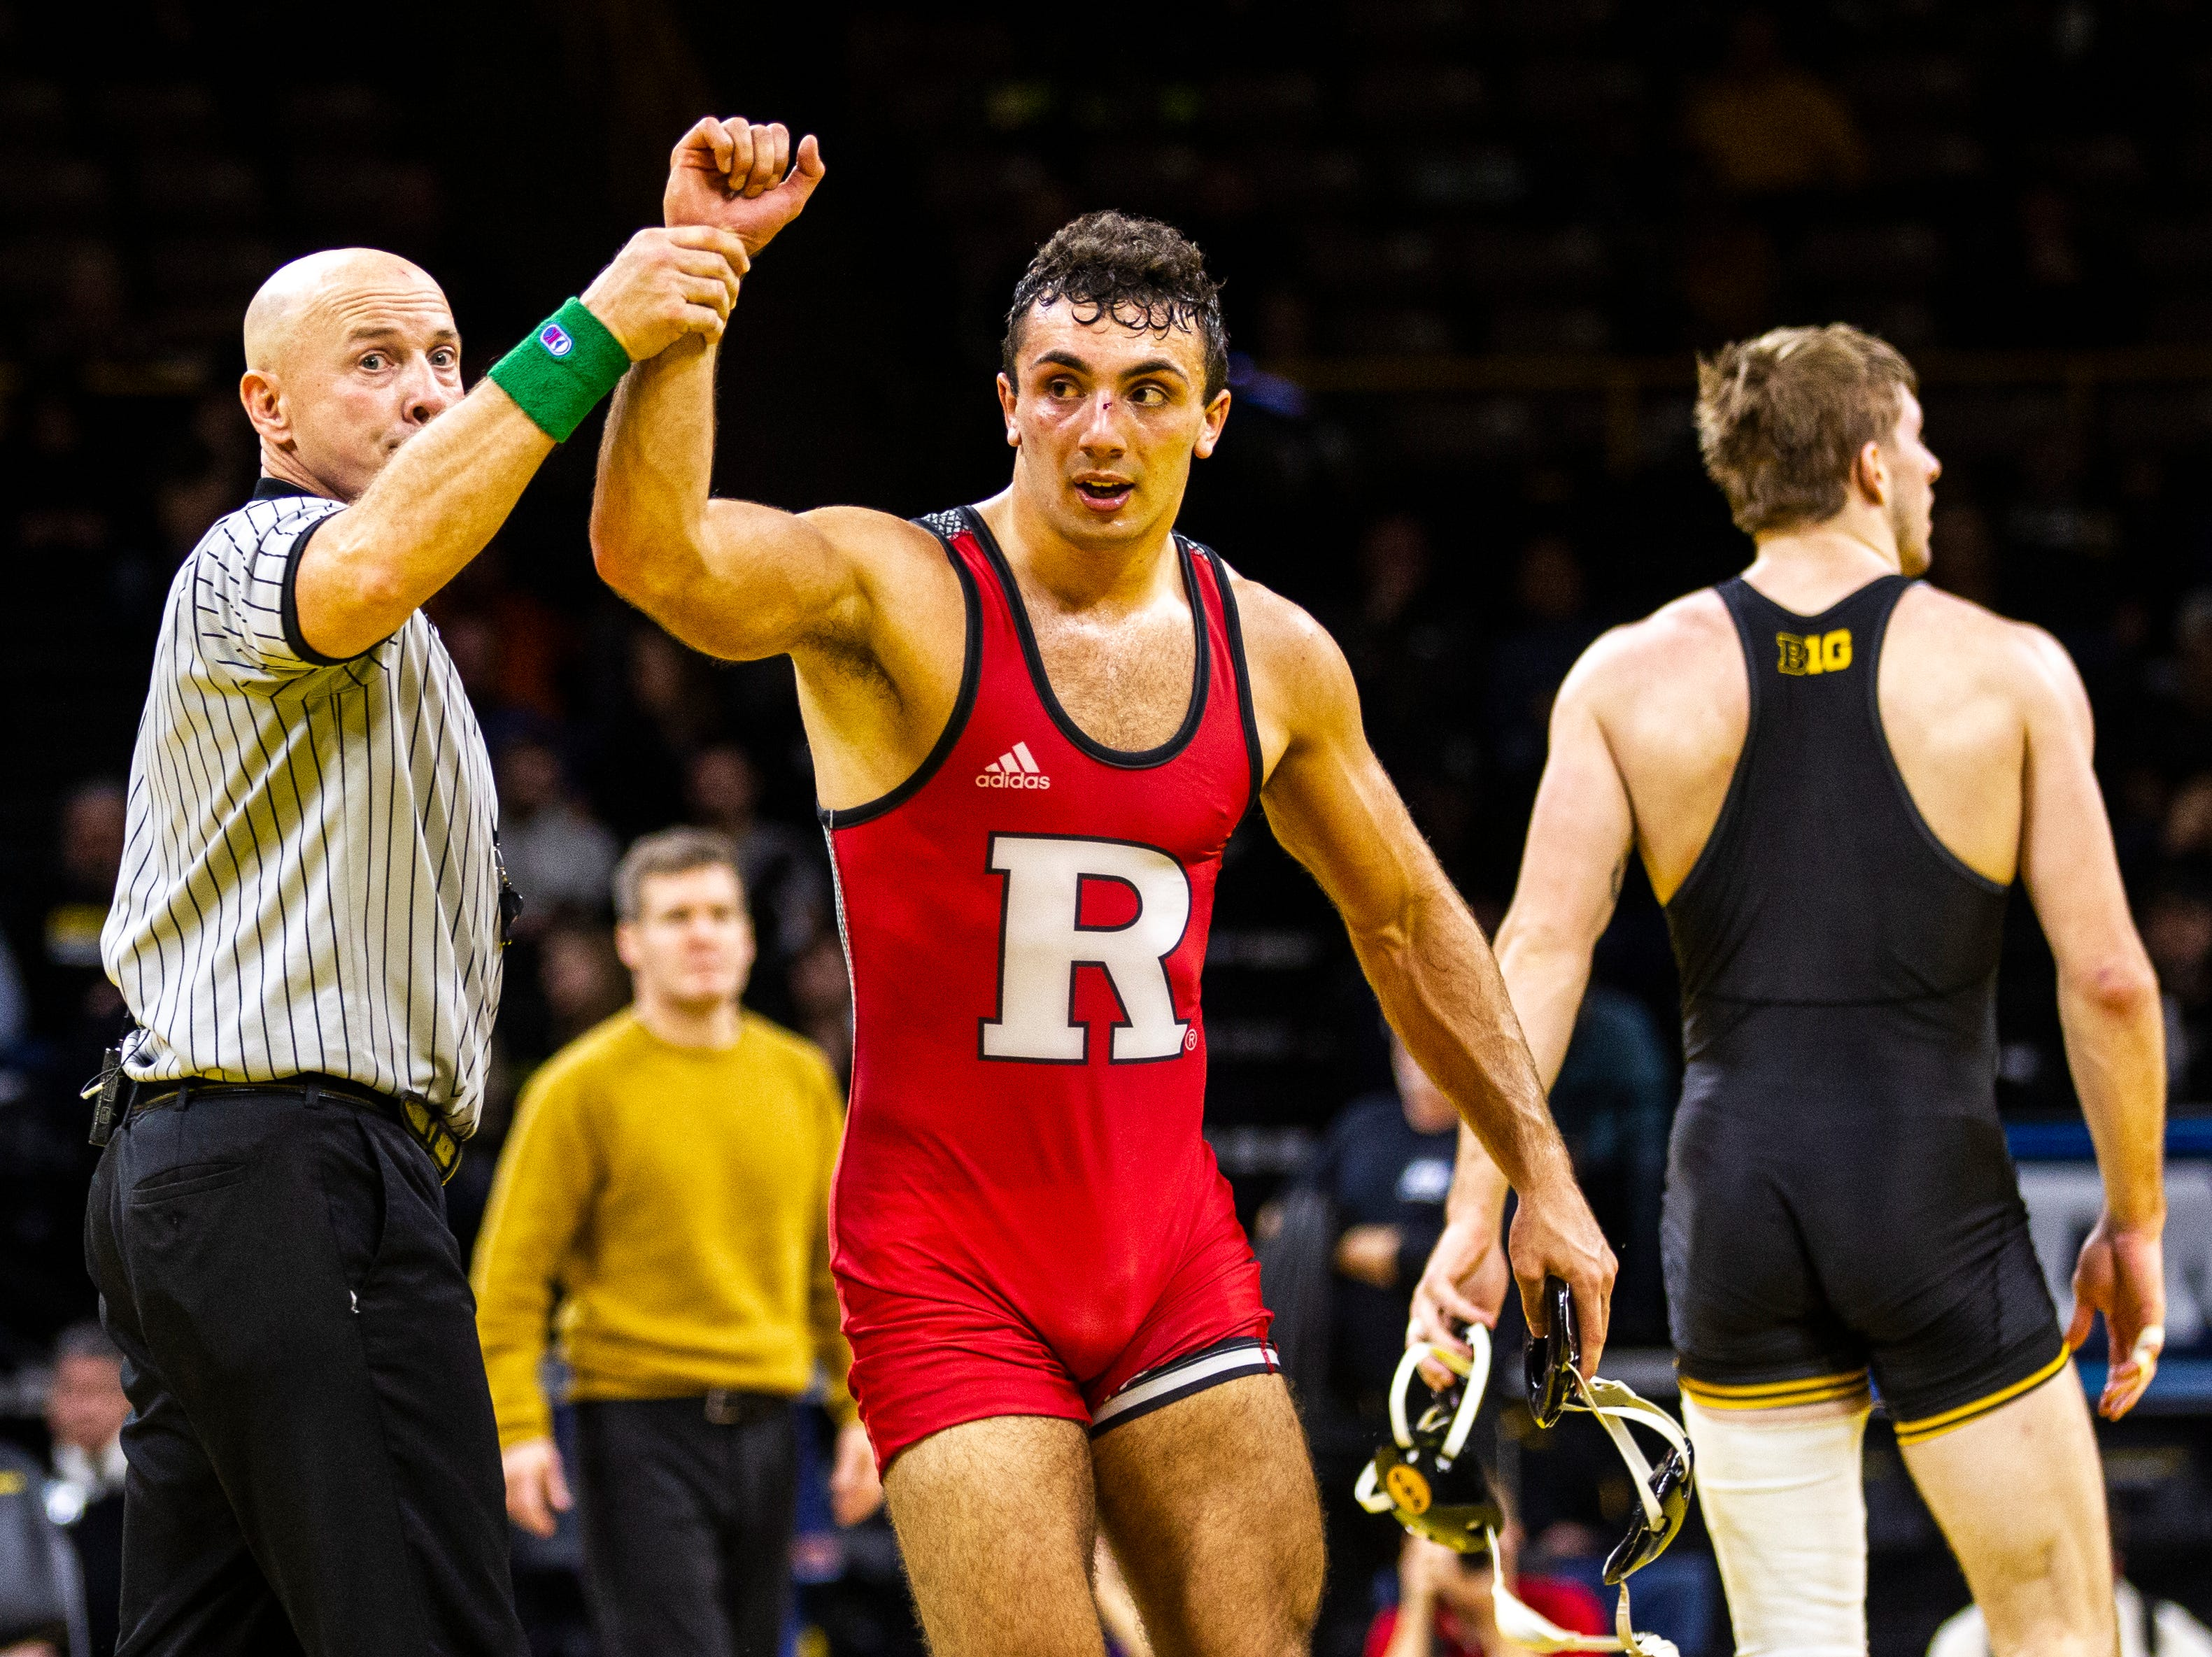 Rutgers' Joseph Grello has his hand raised after defeating Iowa's Mitch Bowman at 174 during a NCAA Big Ten Conference wrestling dual on Friday, Jan. 18, 2019, at Carver-Hawkeye Arena in Iowa City, Iowa.